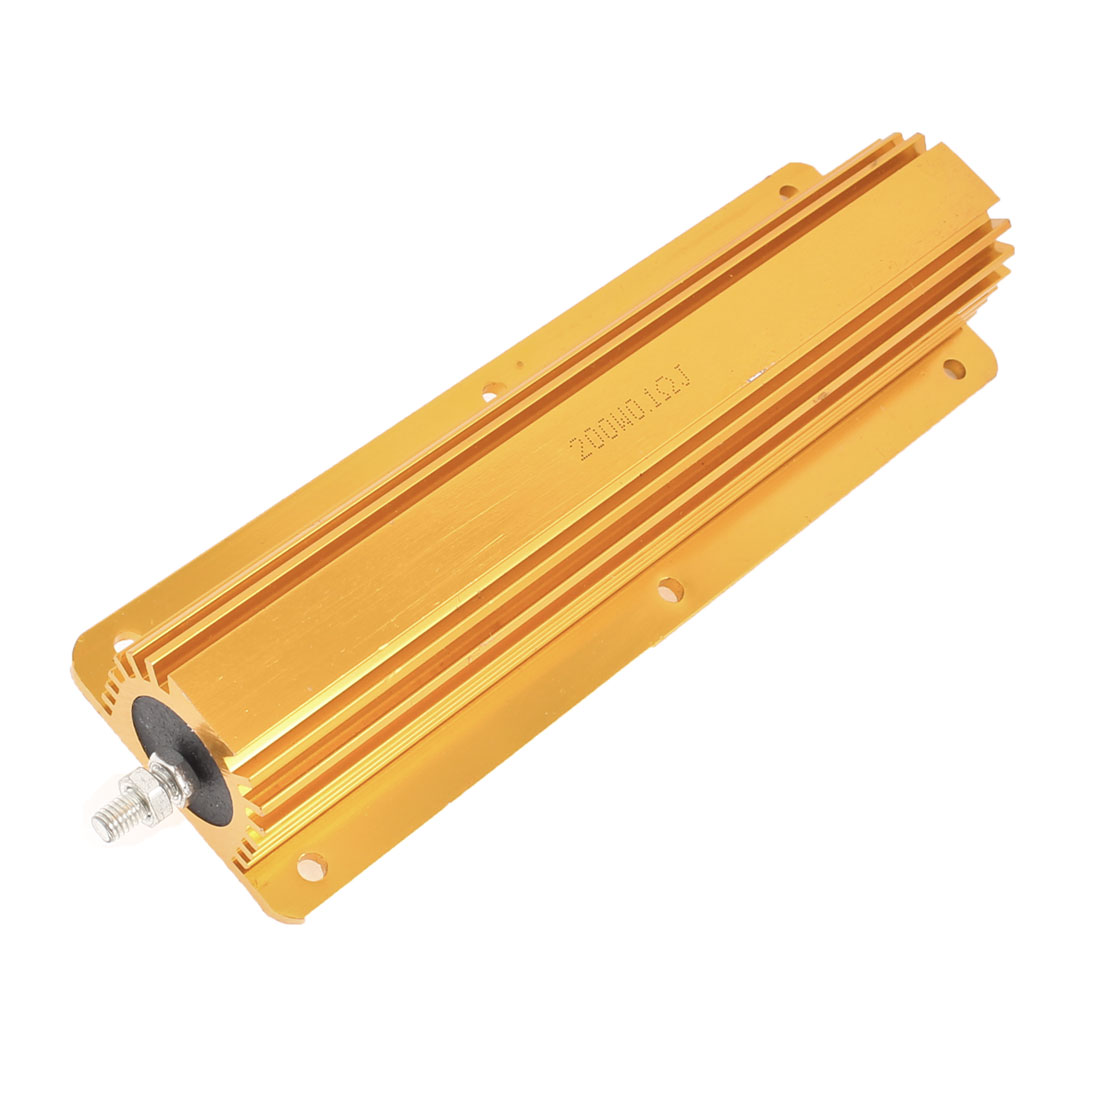 Gold Tone Aluminum Case Resistors 200W Power 0.1 Ohm 5%